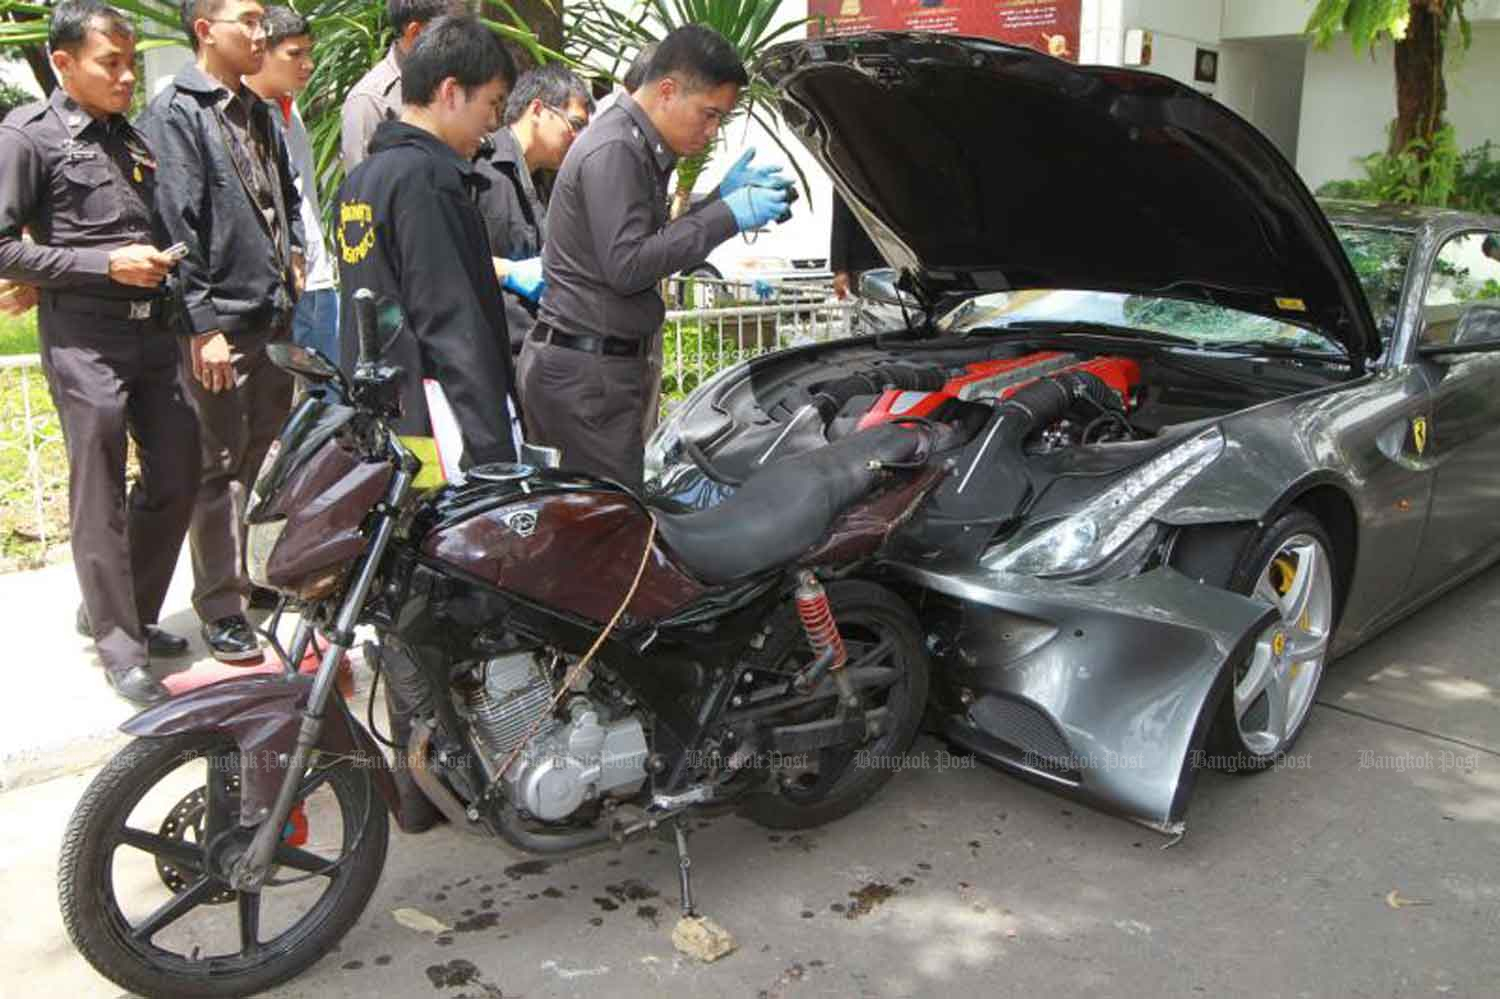 Forensic police inspect a motorcycle belonging to Pol Snr Sgt Maj Wichian Klanprasert of Thong Lor police station and a Ferrari driven by Vorayuth Yoovidhya, the youngest son of Red Bull executive Chalerm Yoovidhya, following the accident in September 2012. (Photo: Somchai Poomlard)